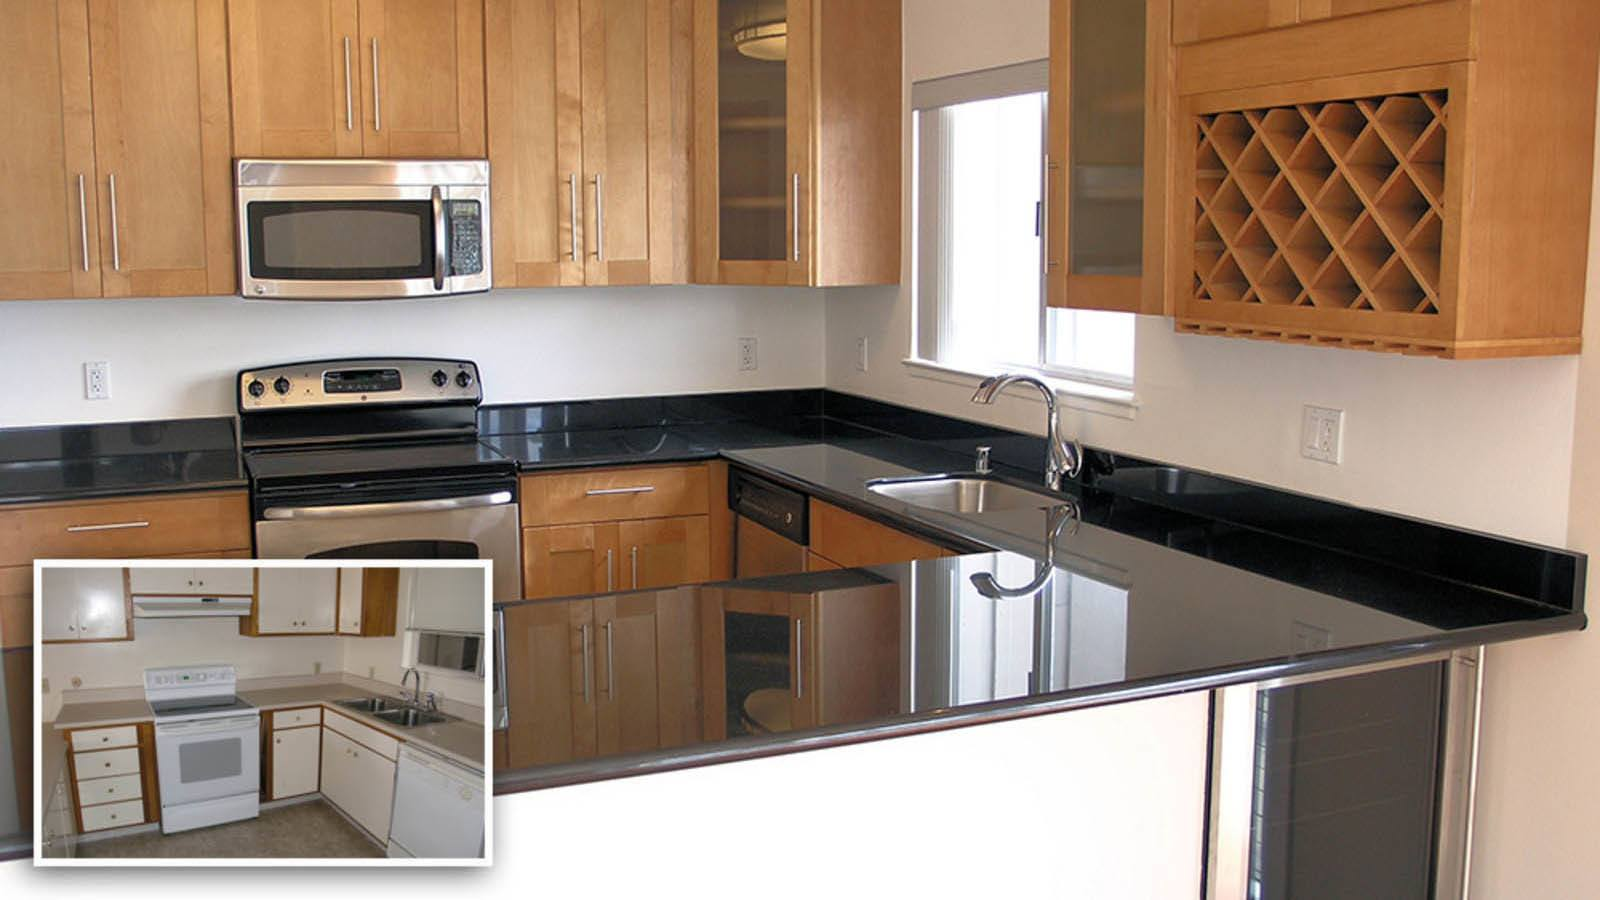 Kitchen Before And After | Sequoia Property Services